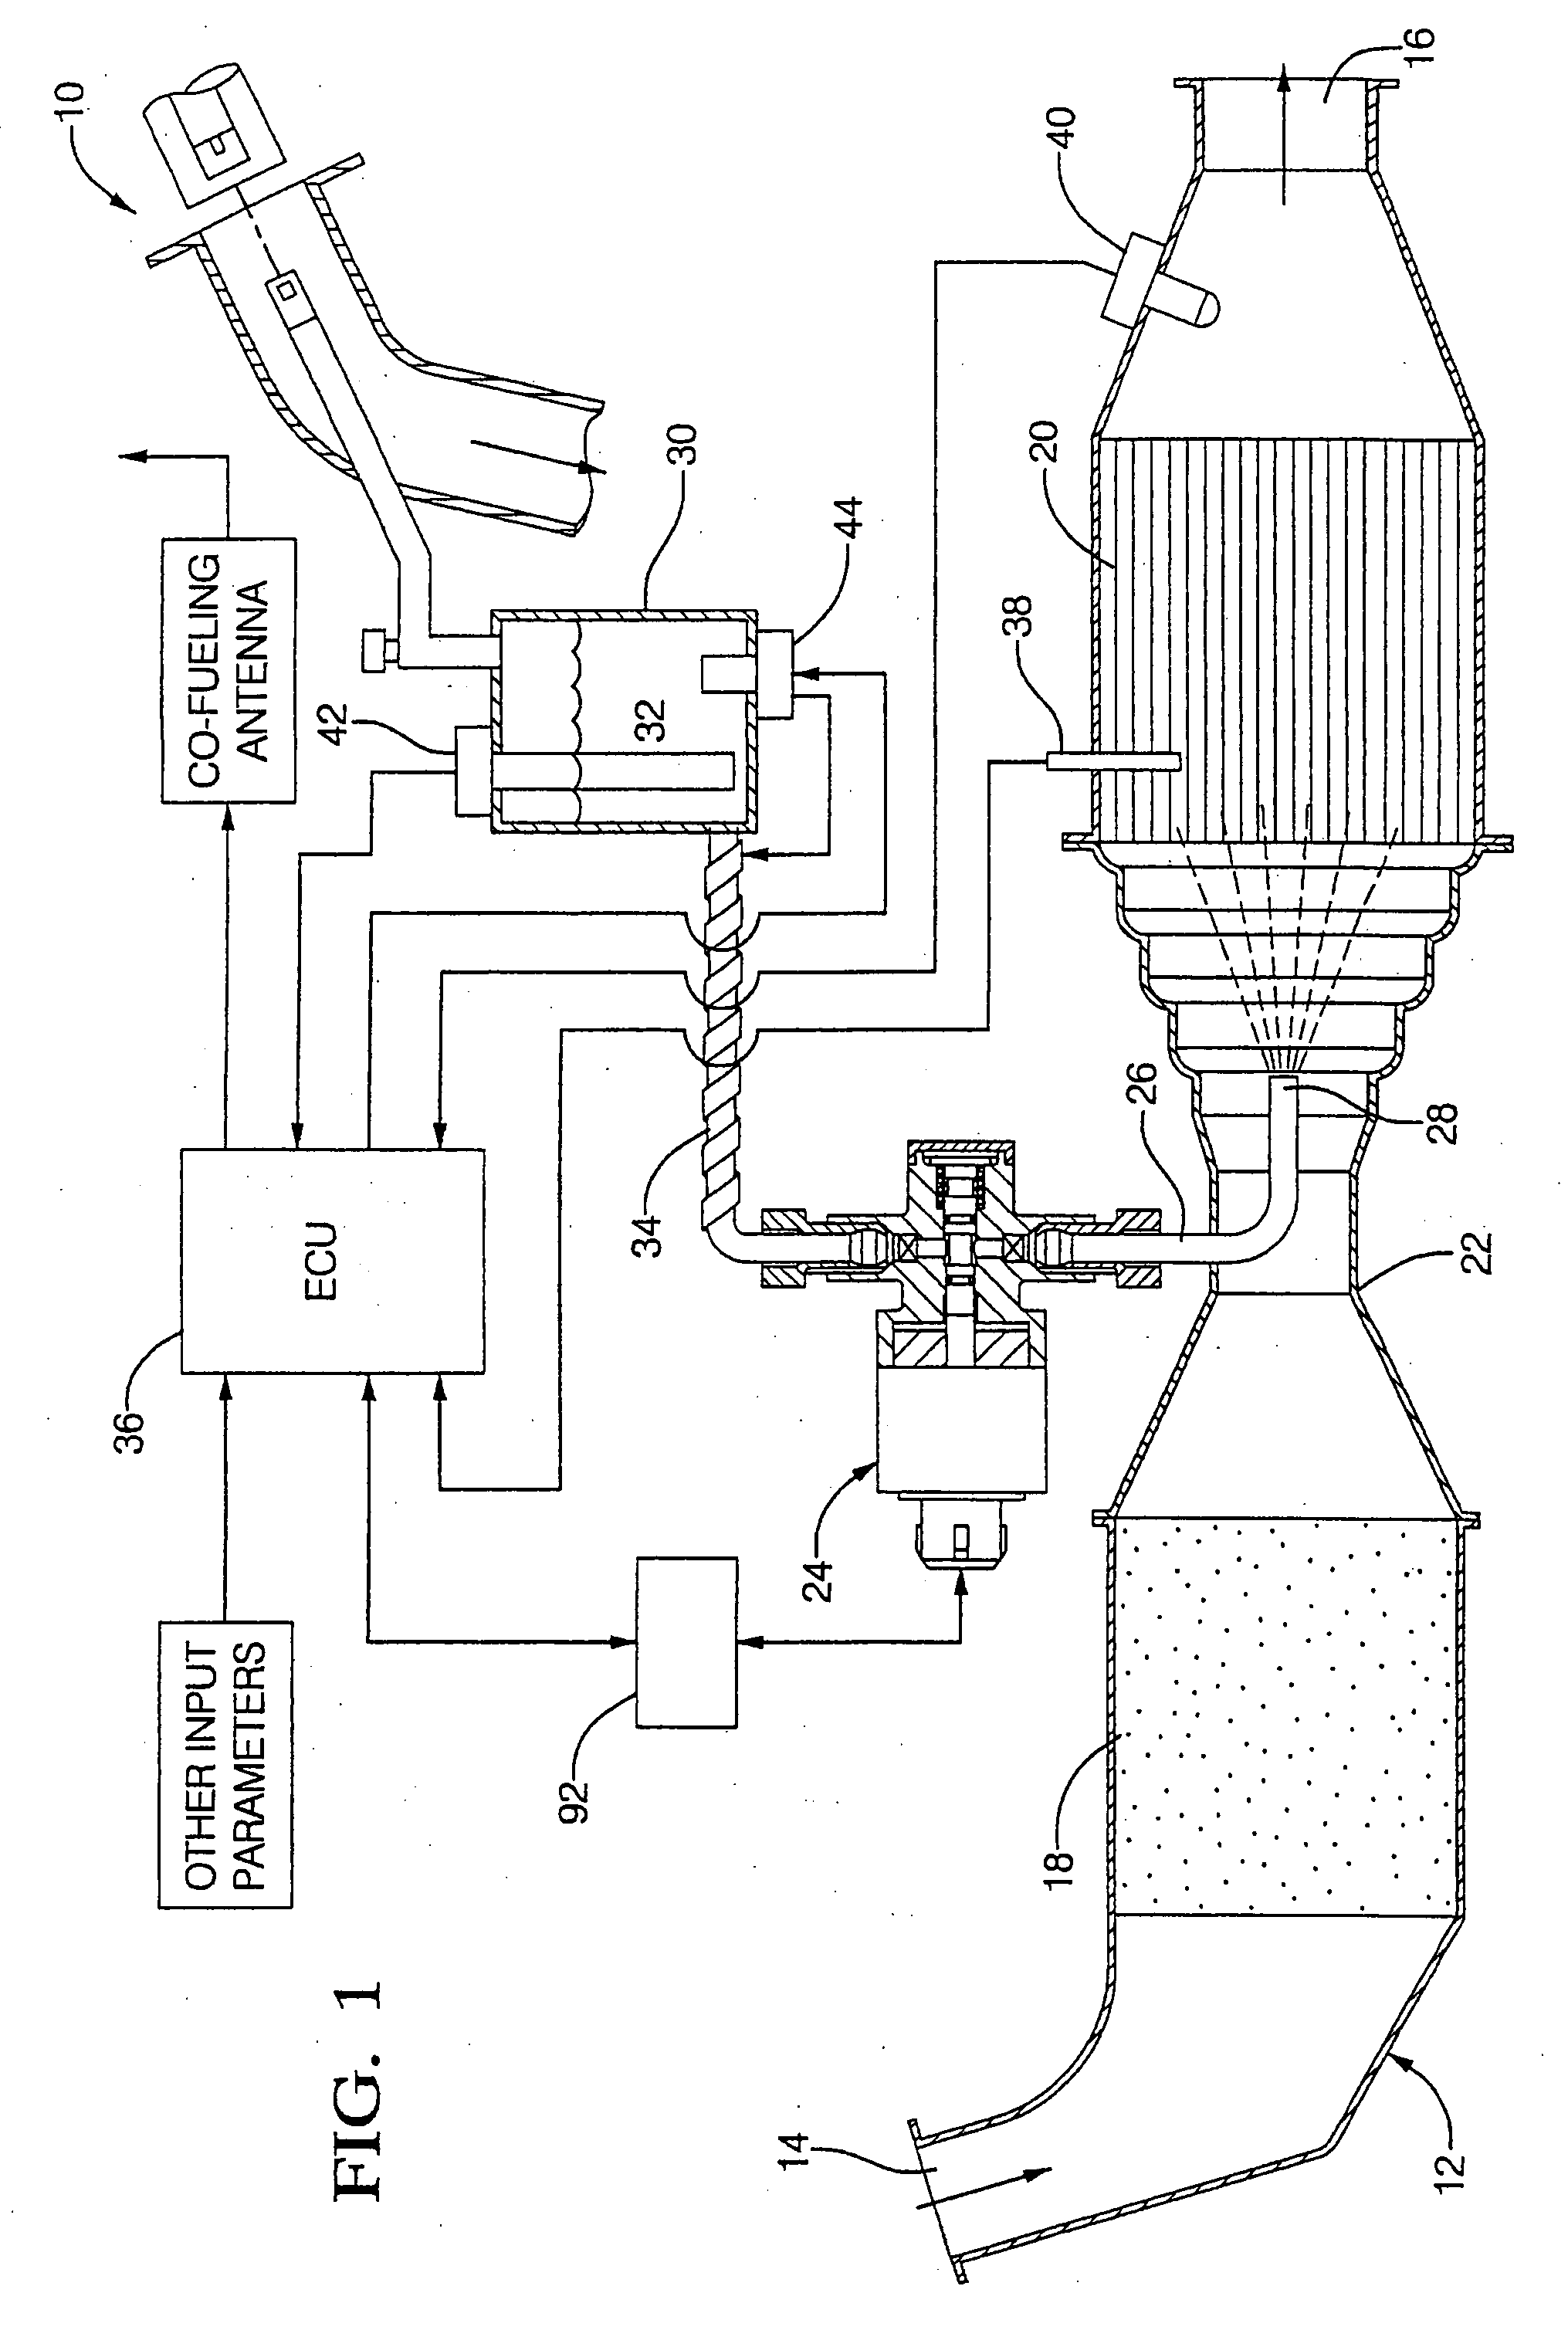 def dosing valve location def dispensing valve